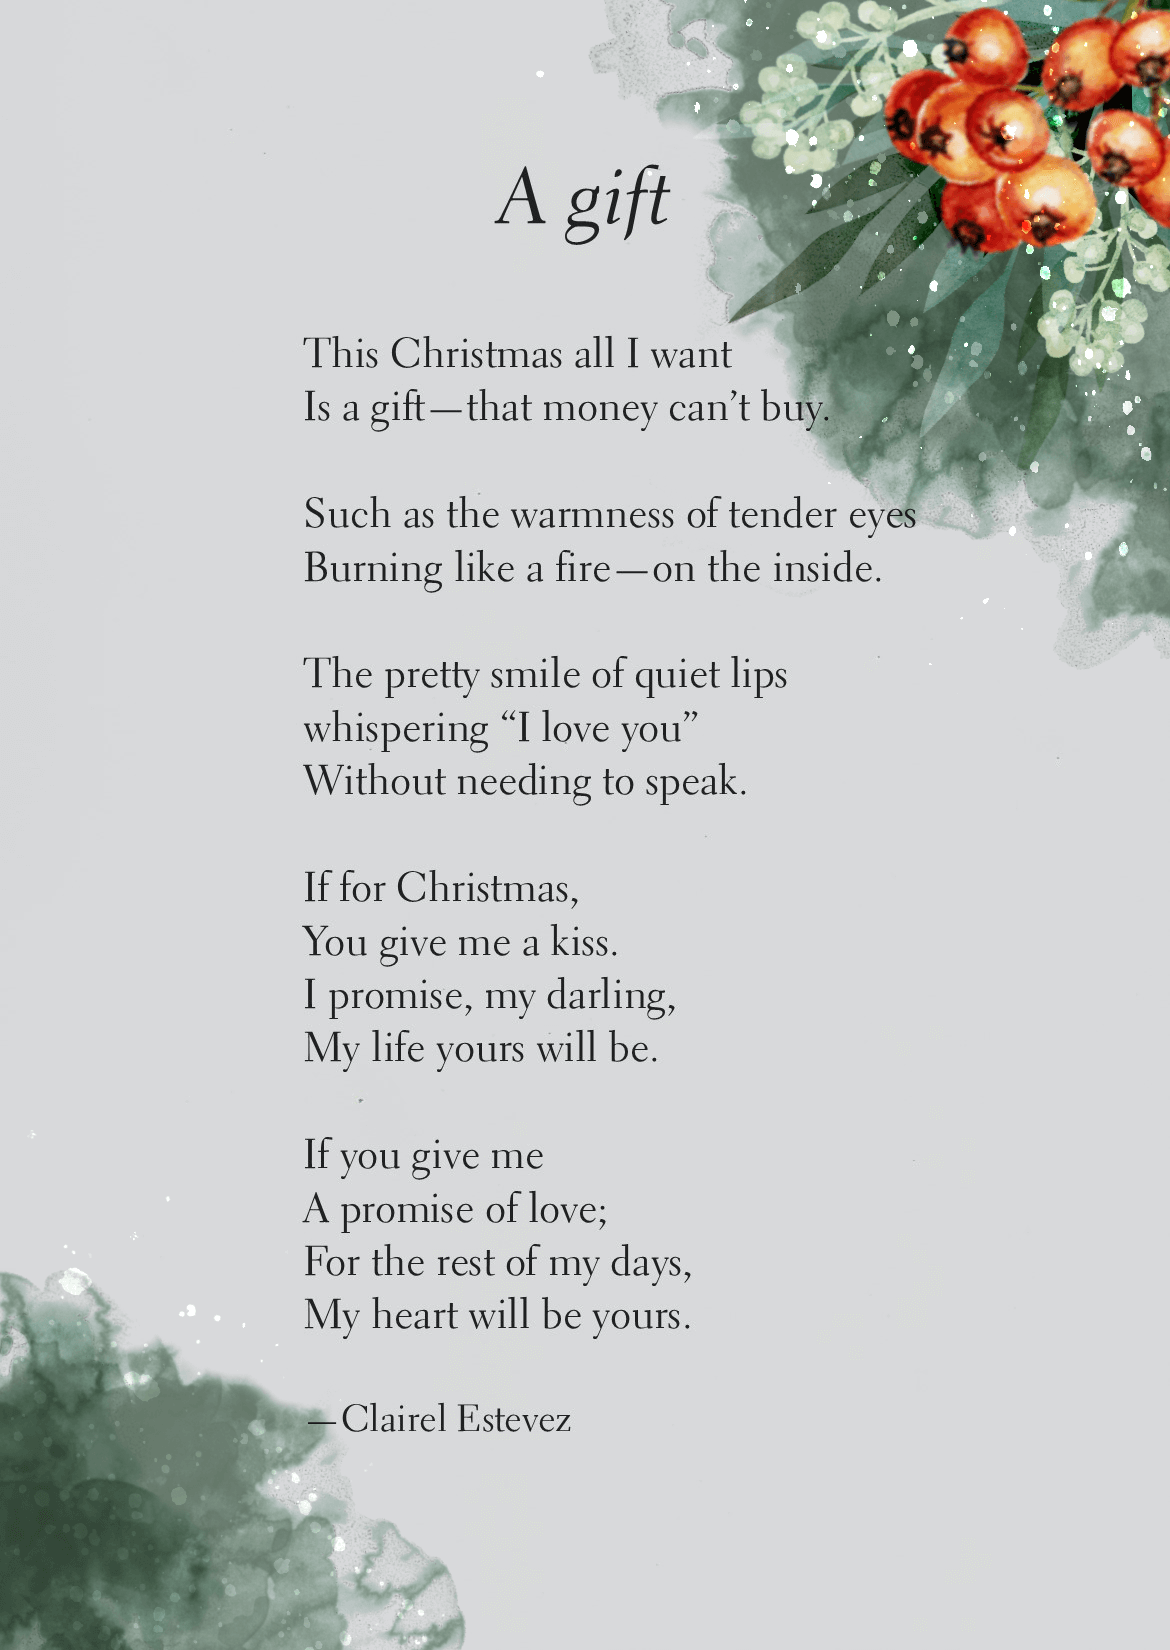 A Gift: Christmas Love Poem